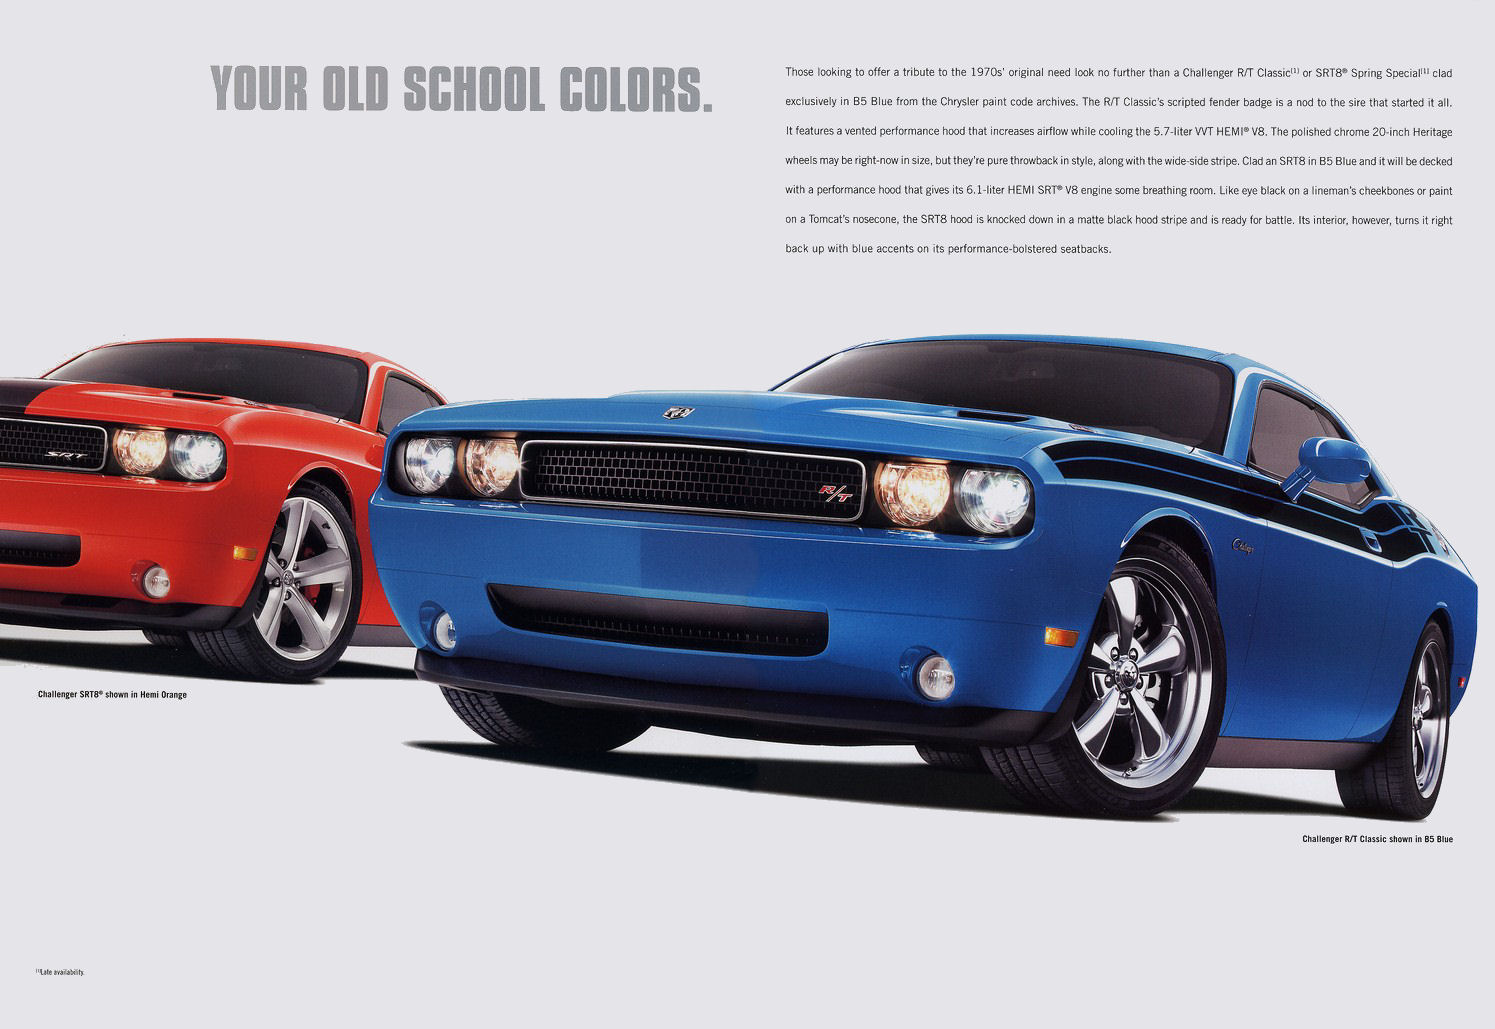 2009 Dodge Challenger Brochure | 2017 - 2018 Best Cars Reviews